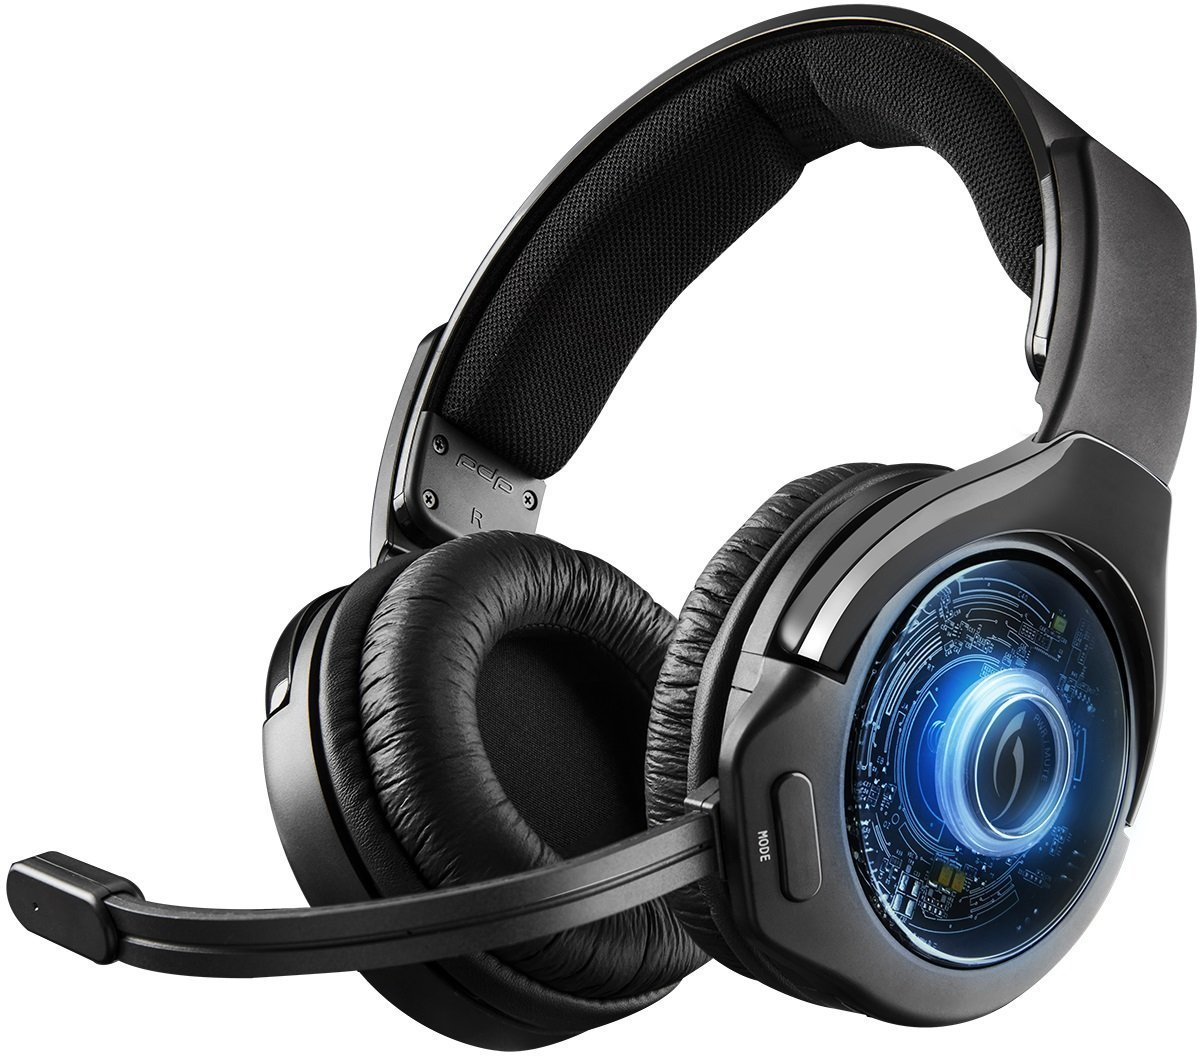 Afterglow AG 9 Draadloze Stereo - Gaming Headset - Quadboost - PS4